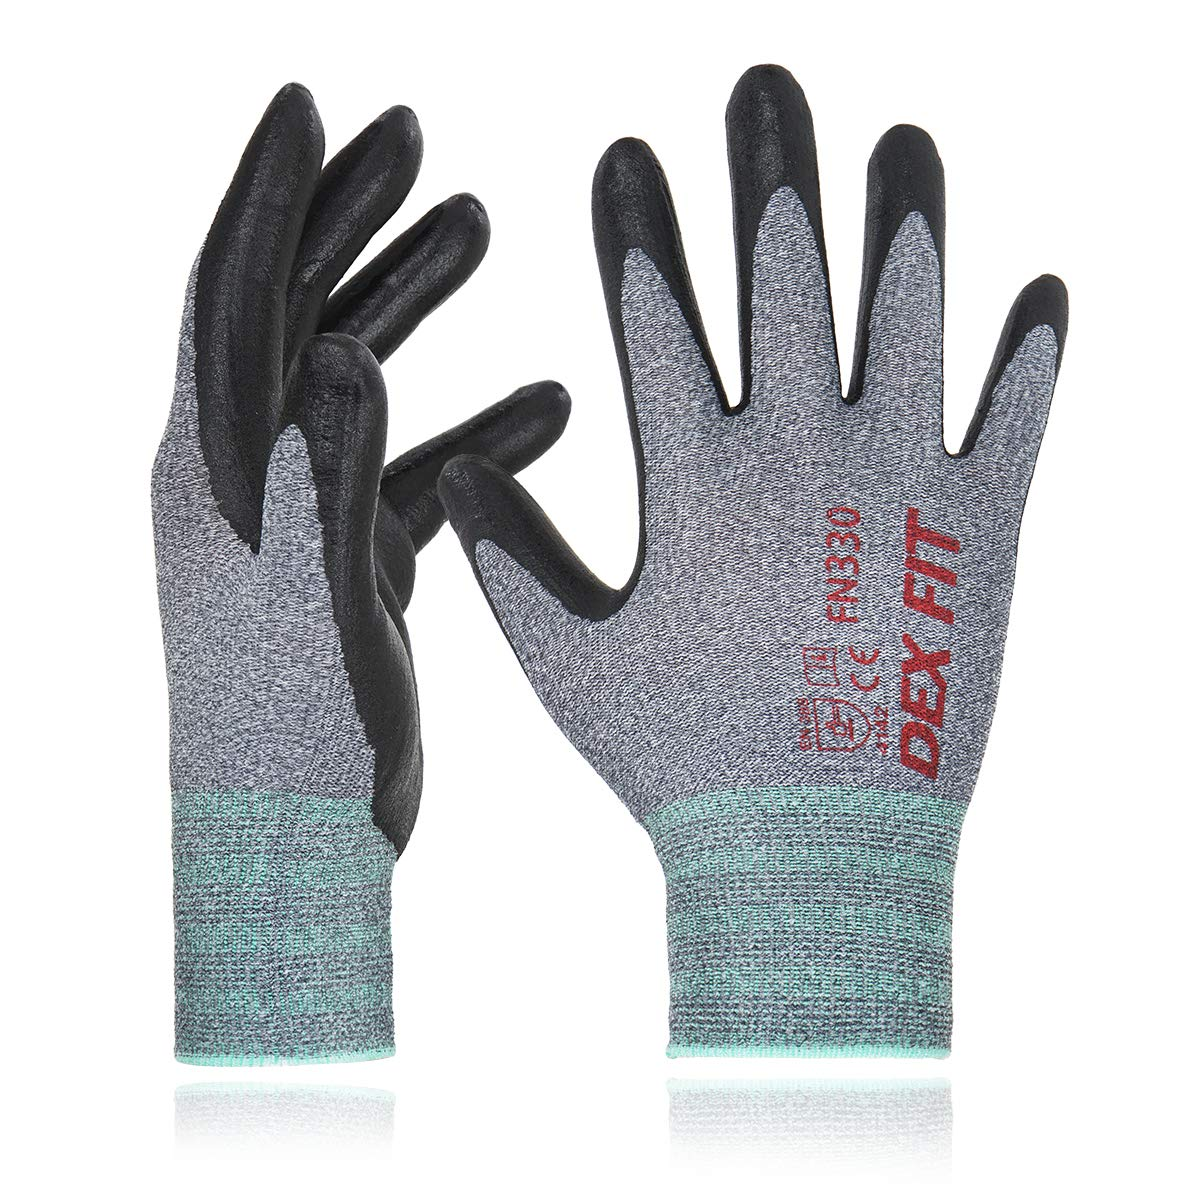 DEX FIT Nitrile Work Gloves FN330, 3D Comfort Stretch Fit, Durable Power Grip Foam Coated, Smart Touch, Thin Machine Washable, Grey Large 12 Pairs Pack